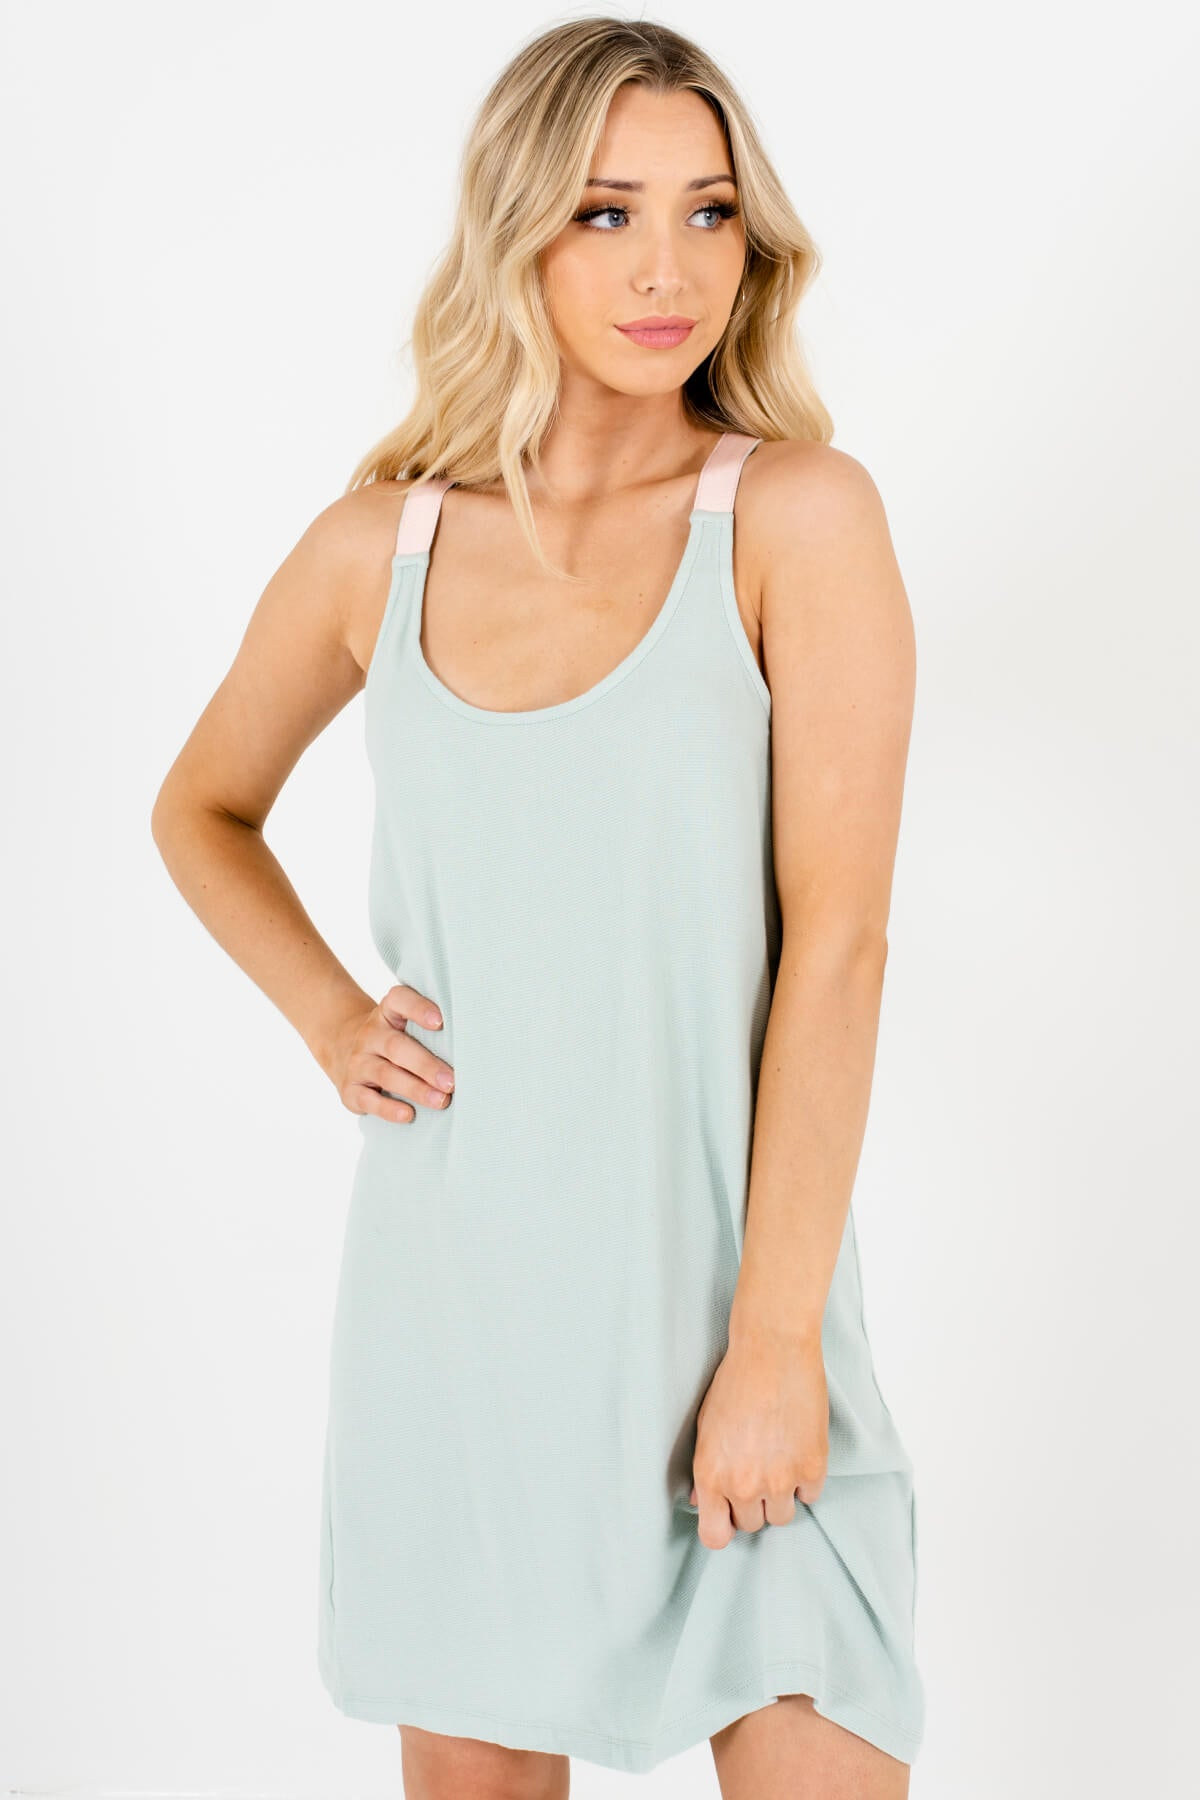 Mint Blue Baby Pink Colorblock Cover-Up Mini Dresses for Women